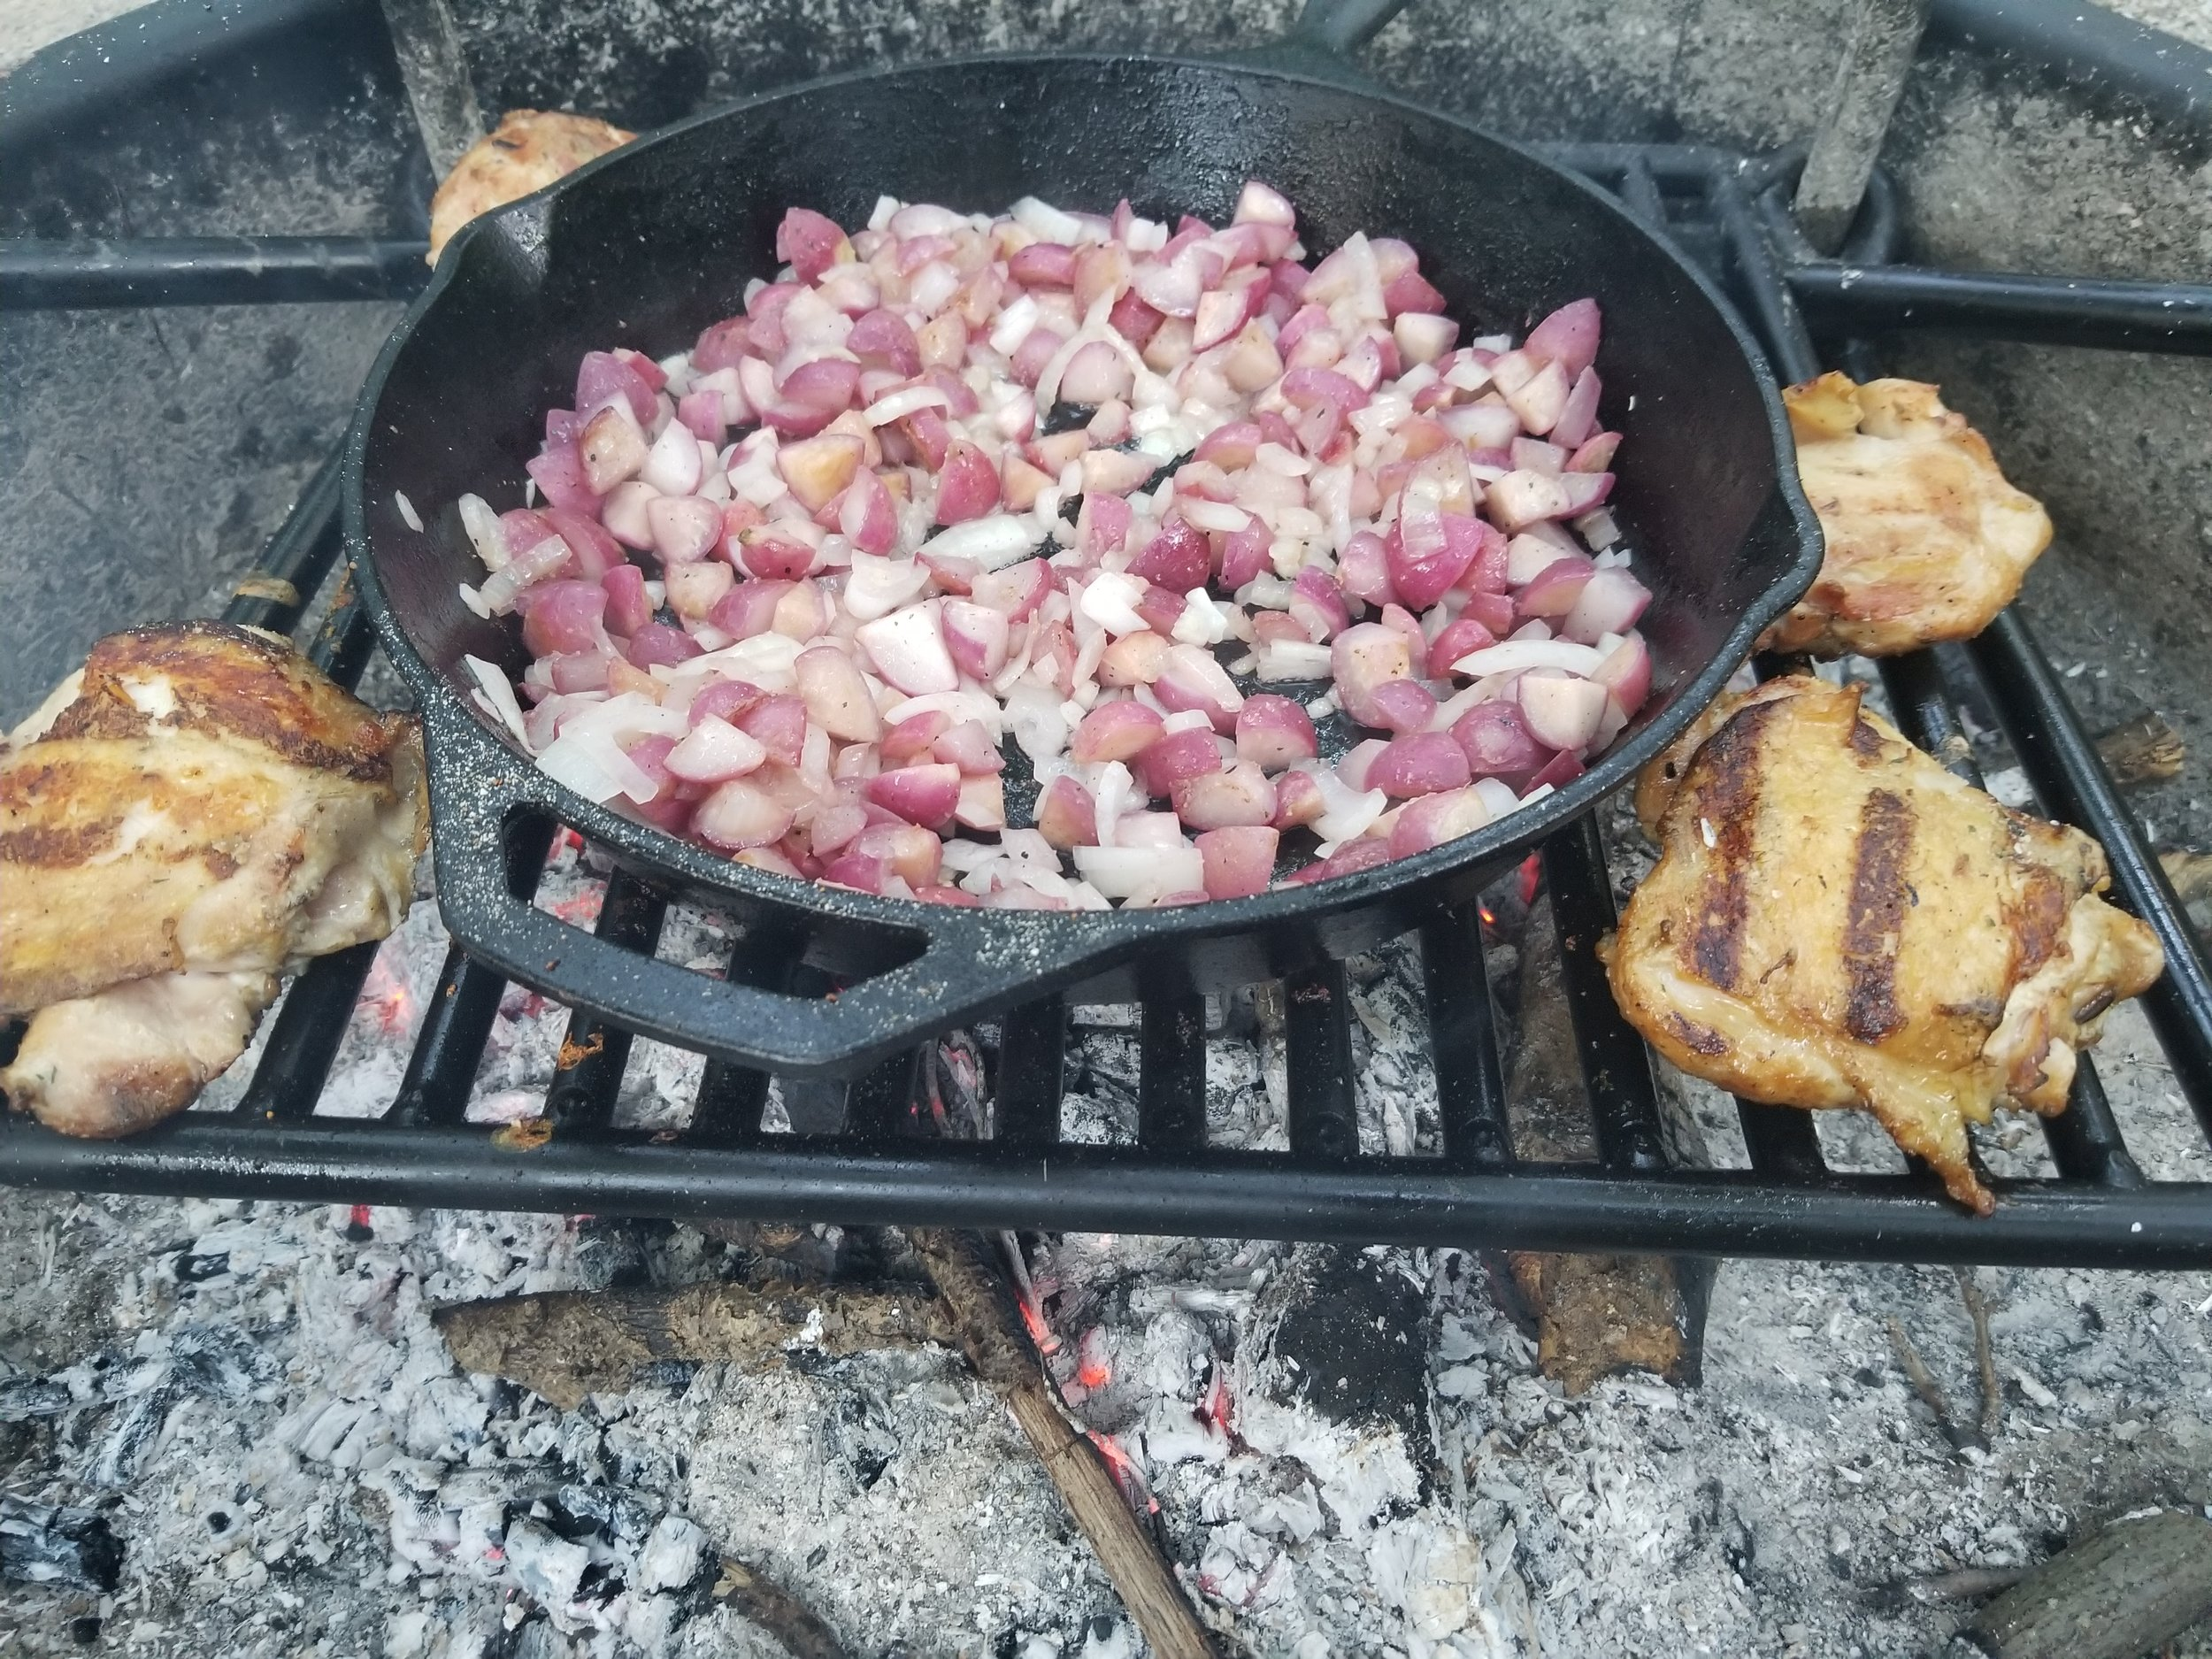 Cooking dinner on the campfire